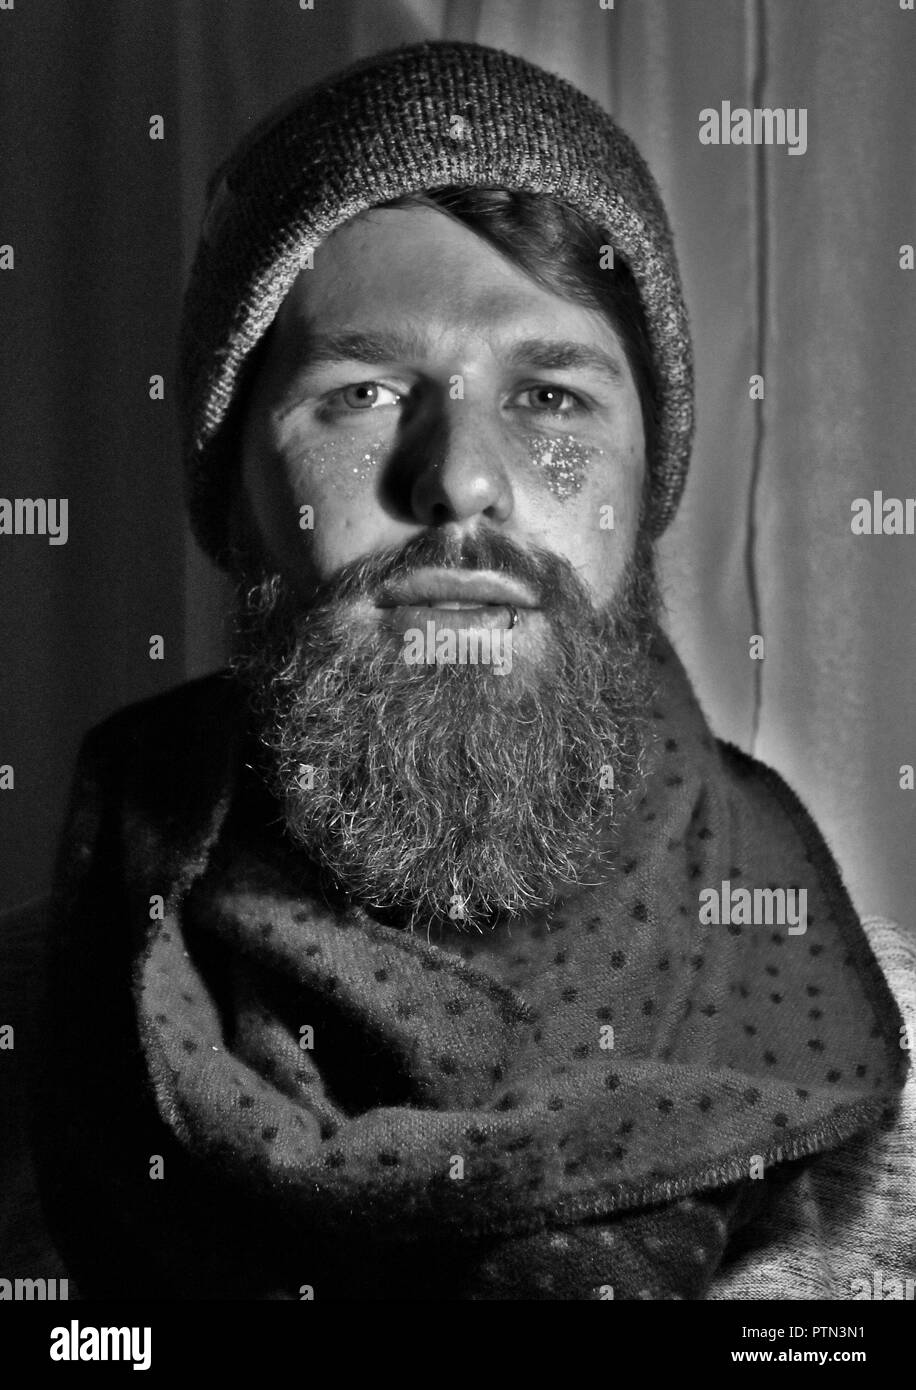 Bearded and pierced model - Stock Image